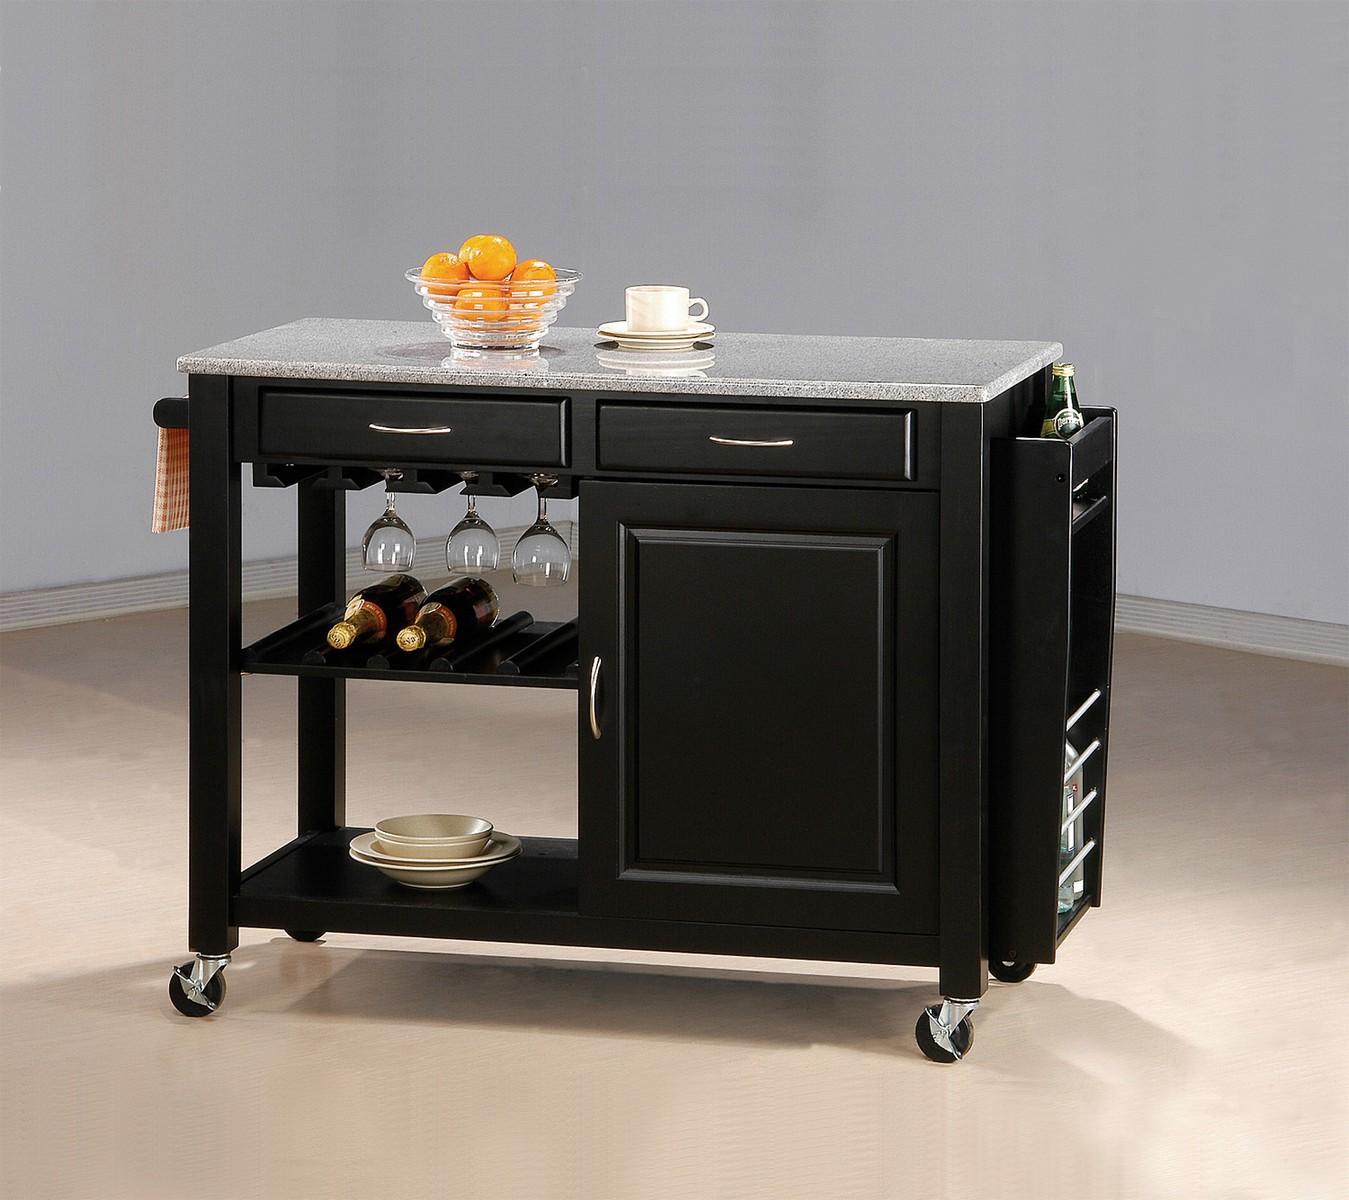 Coaster 5870 Kitchen Cart - Black/Granite Top